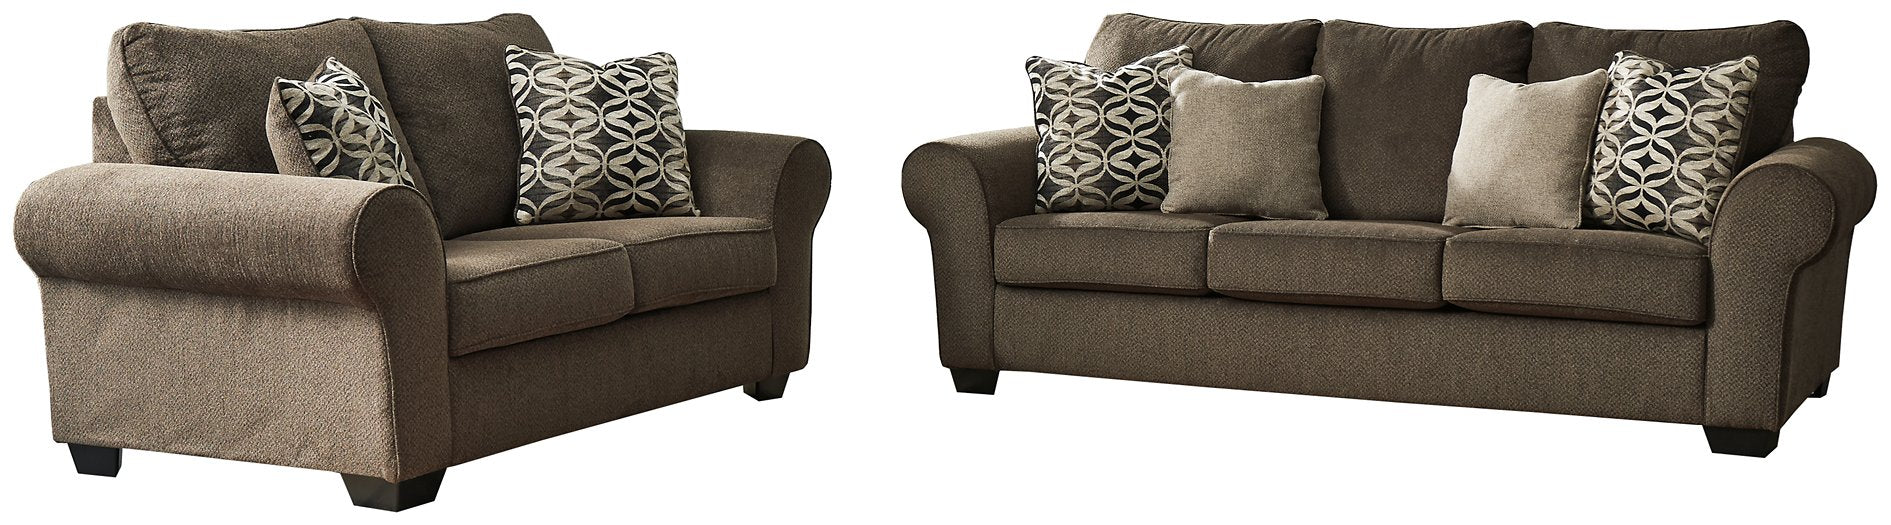 Nesso Benchcraft 2-Piece Living Room Set